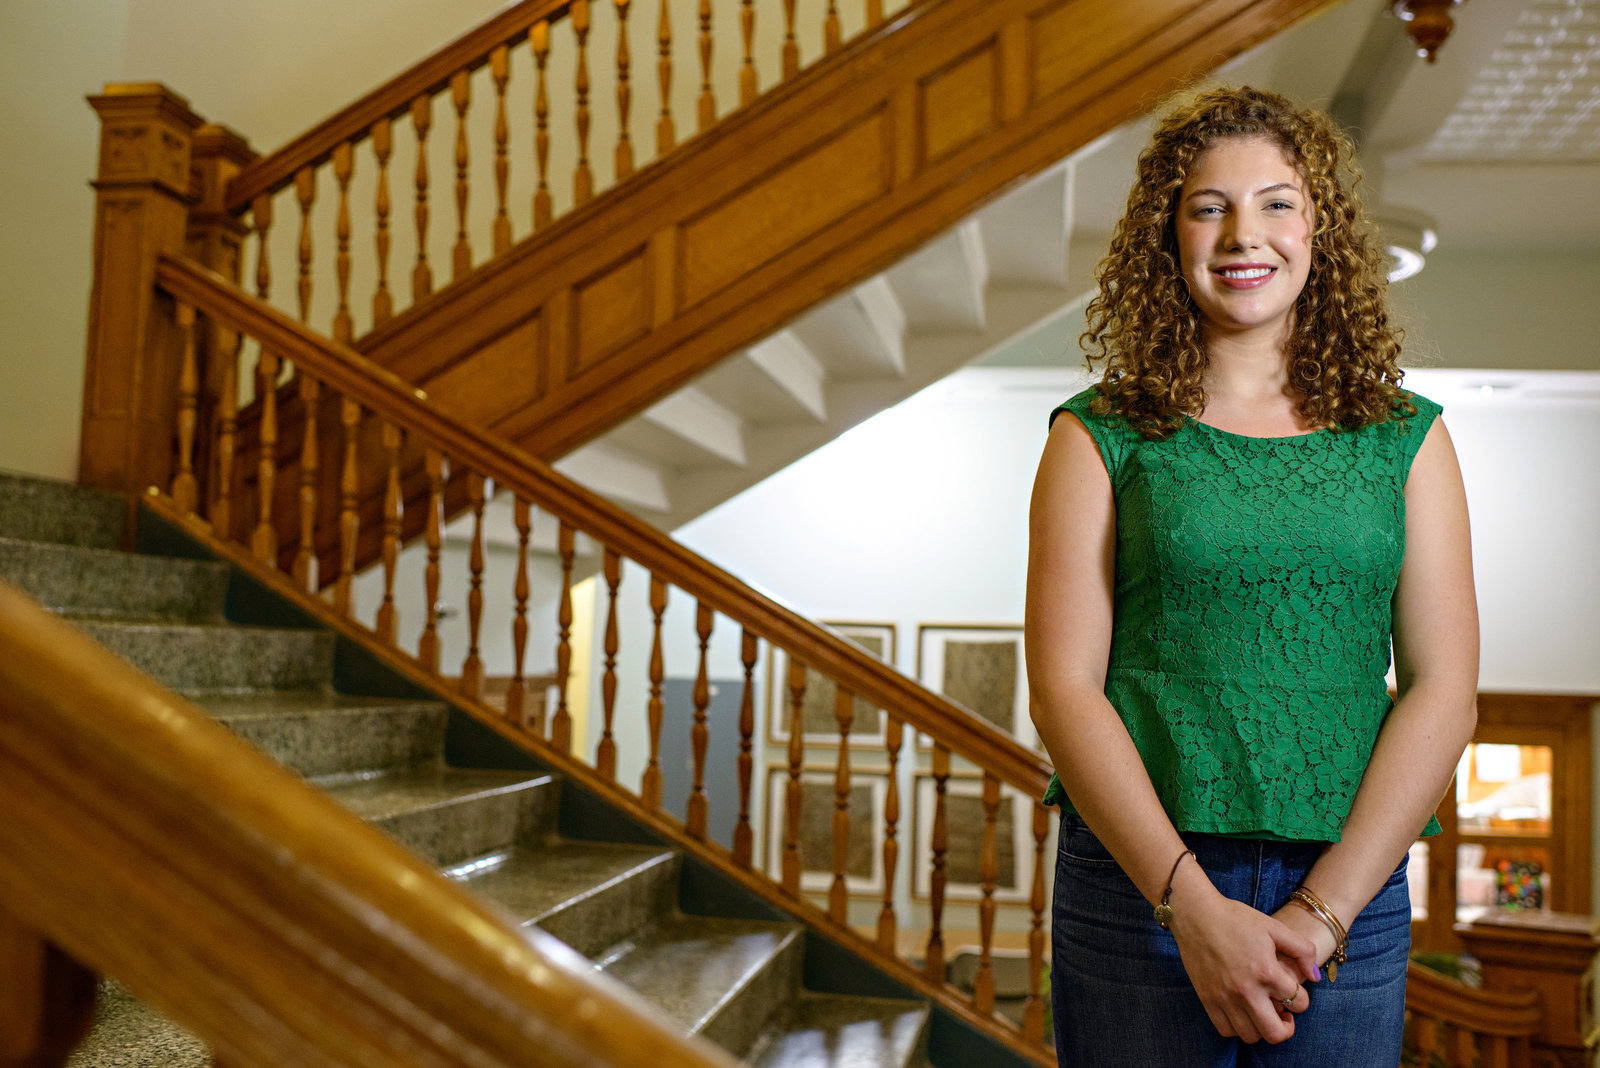 A young professional woman stands in stairs and smiles.